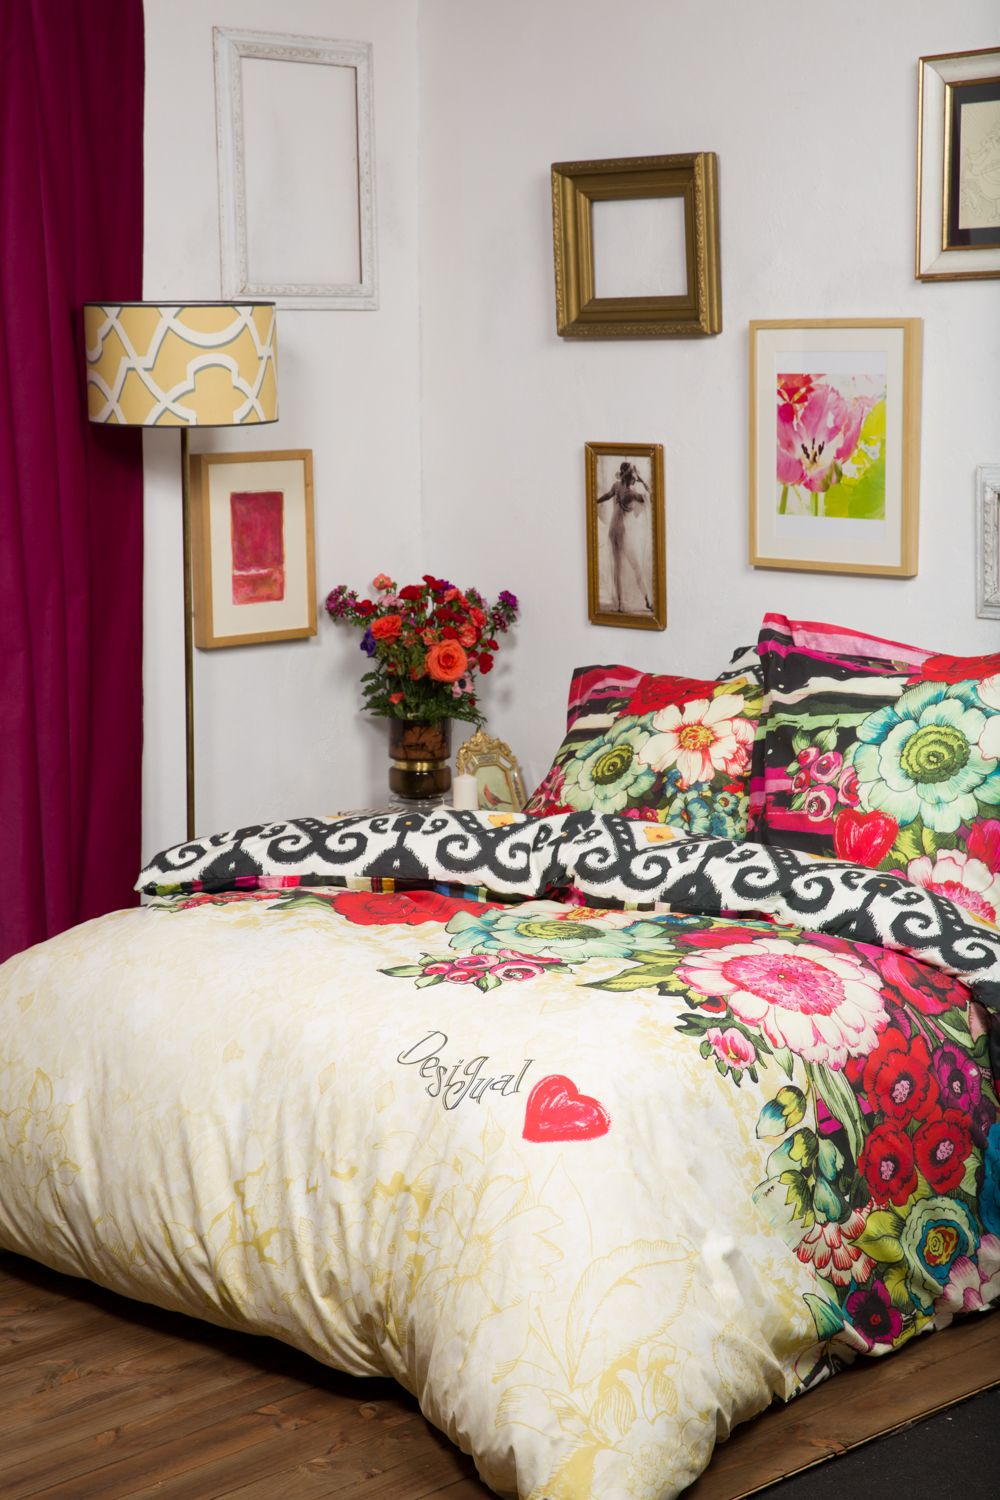 Make your home your palace with desigual this beautiful floral bedding will add a touch of - Desigual home decor ...